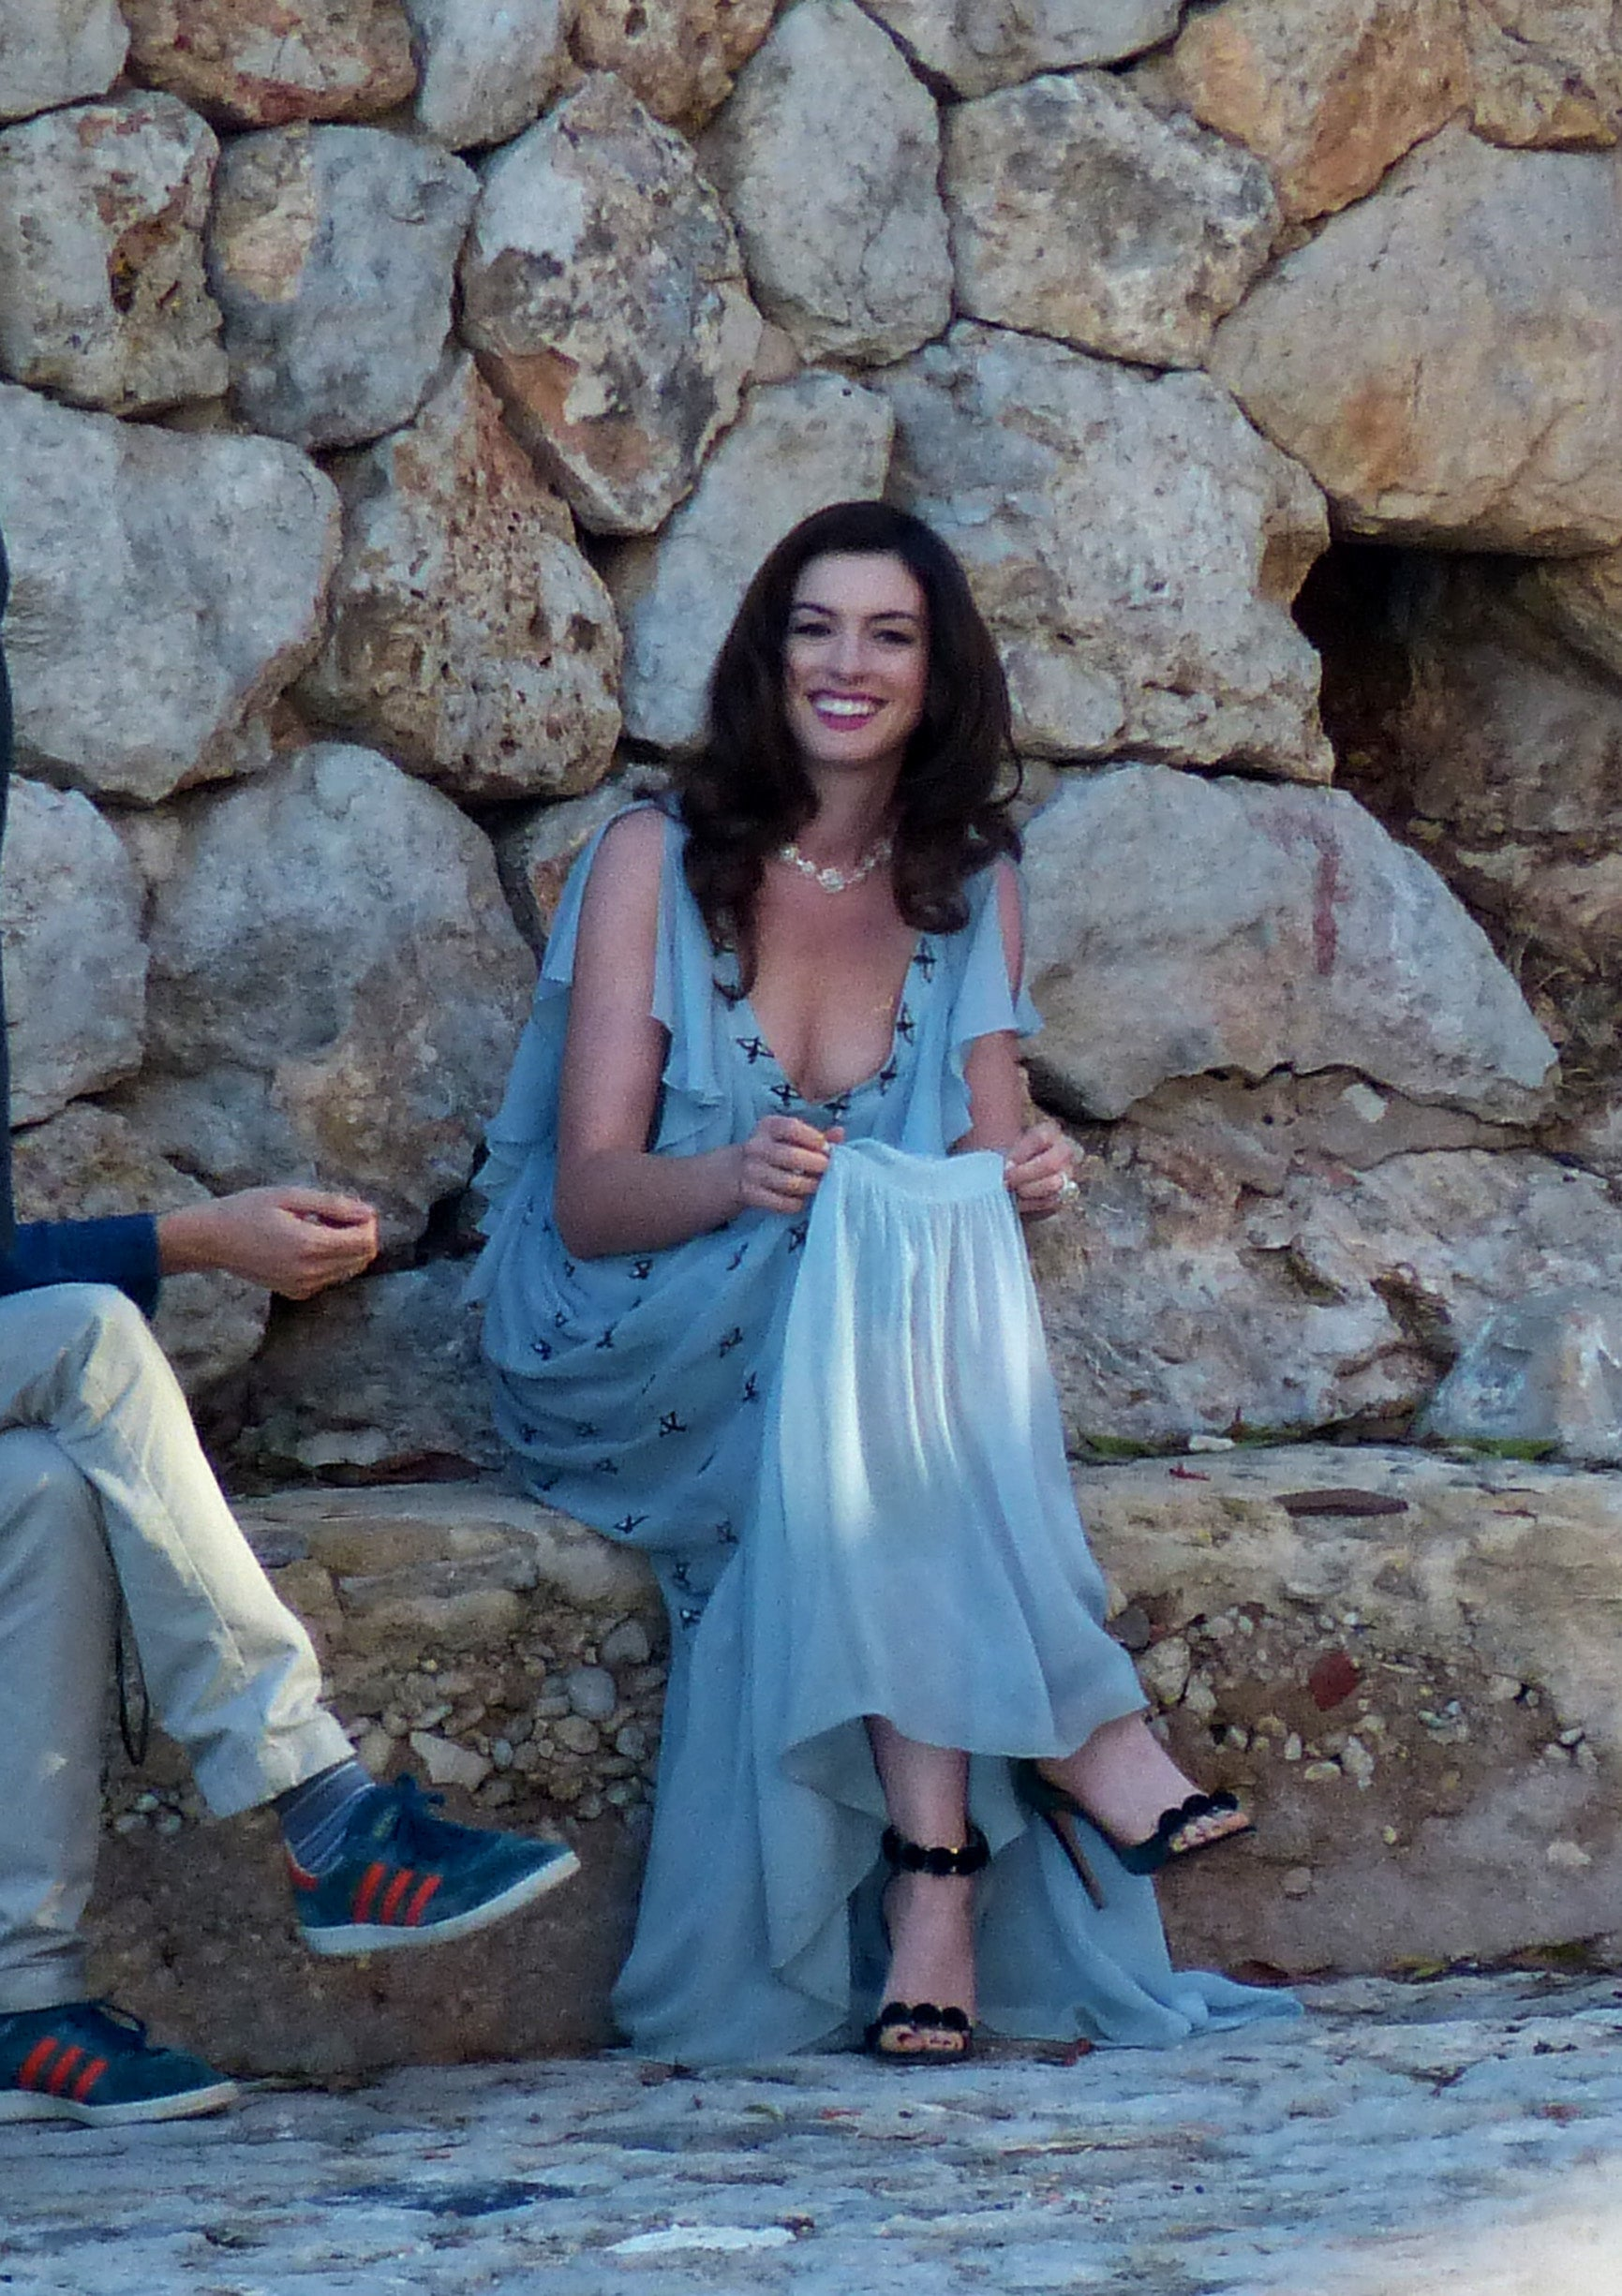 Anne Hathaway Stuns In Ethereal Blue Gown On The Set Of